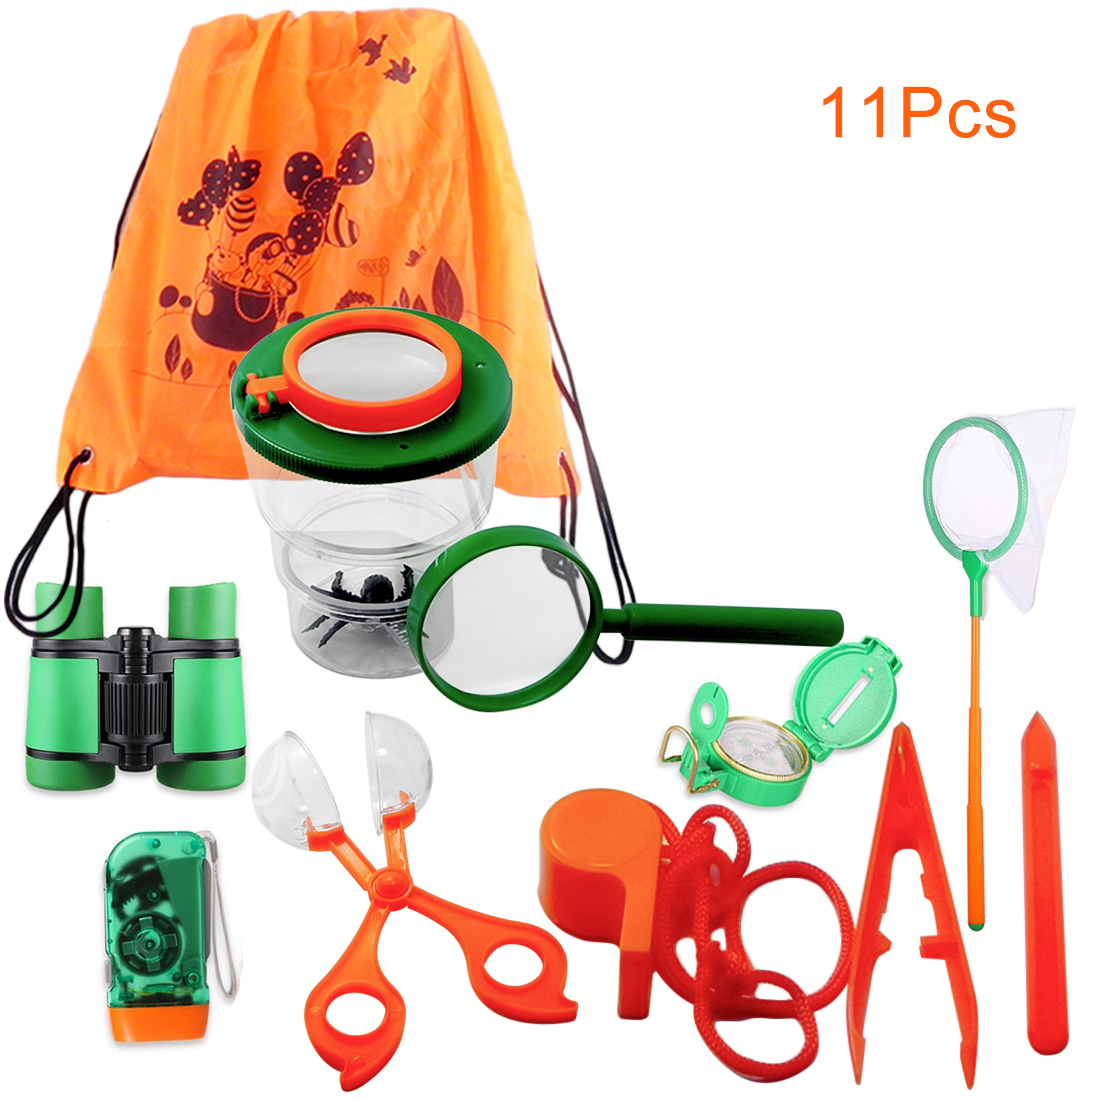 11Pcs Catching Butterfly Tool Set Flying Insect Toys Kit for Children Wilderness Adventure Sports Toys for Kids Children 201811Pcs Catching Butterfly Tool Set Flying Insect Toys Kit for Children Wilderness Adventure Sports Toys for Kids Children 2018